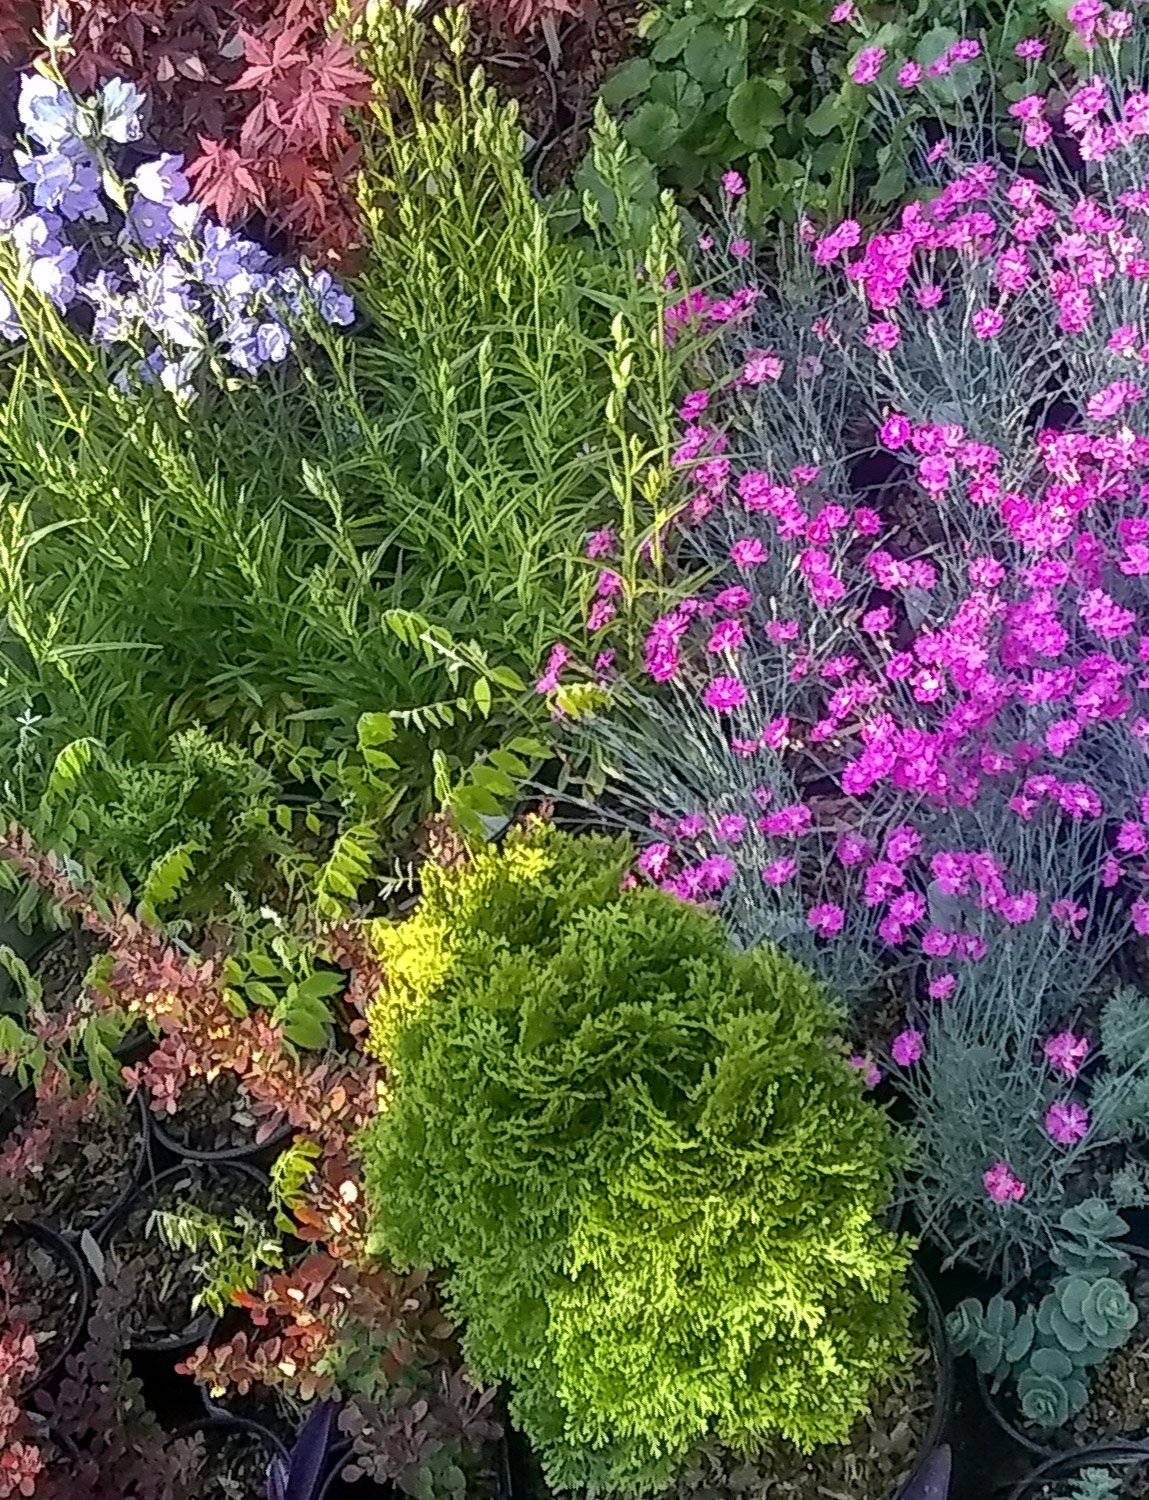 Grouping of an evergreen shrub and pink blooming perennials for nursery sale